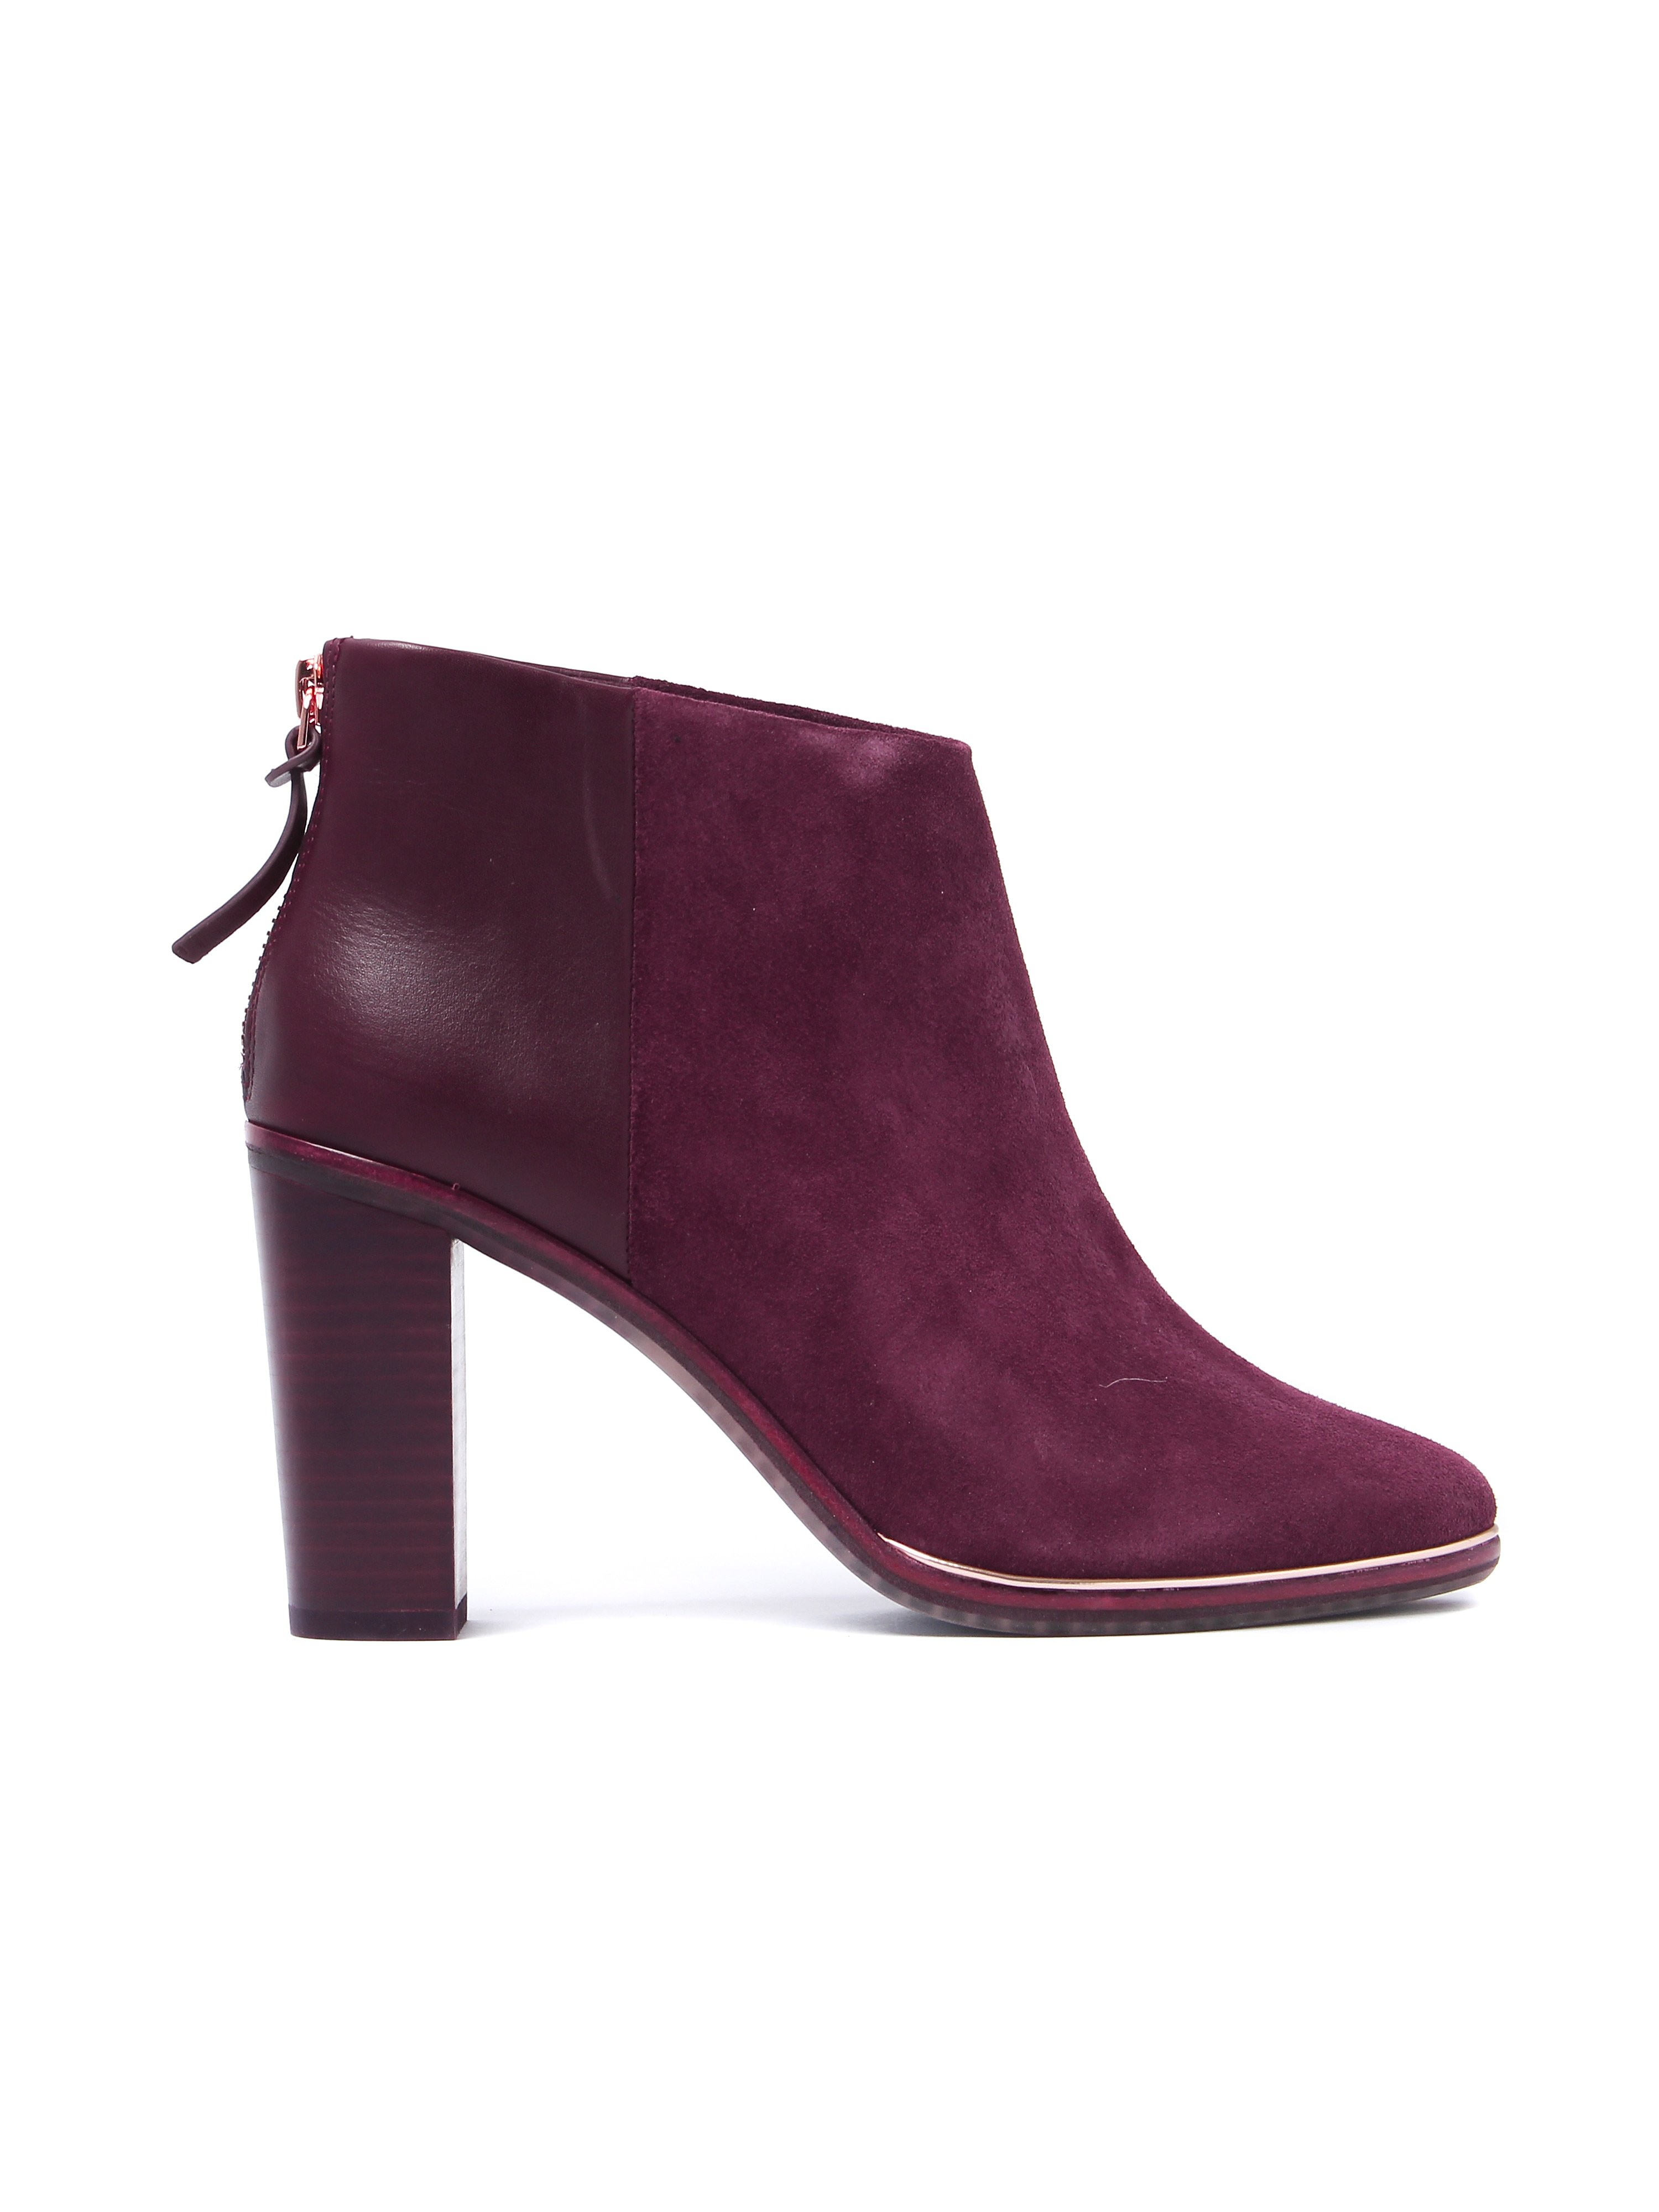 Ted Baker Women's Azalia Ankle Boots - Burgundy Suede